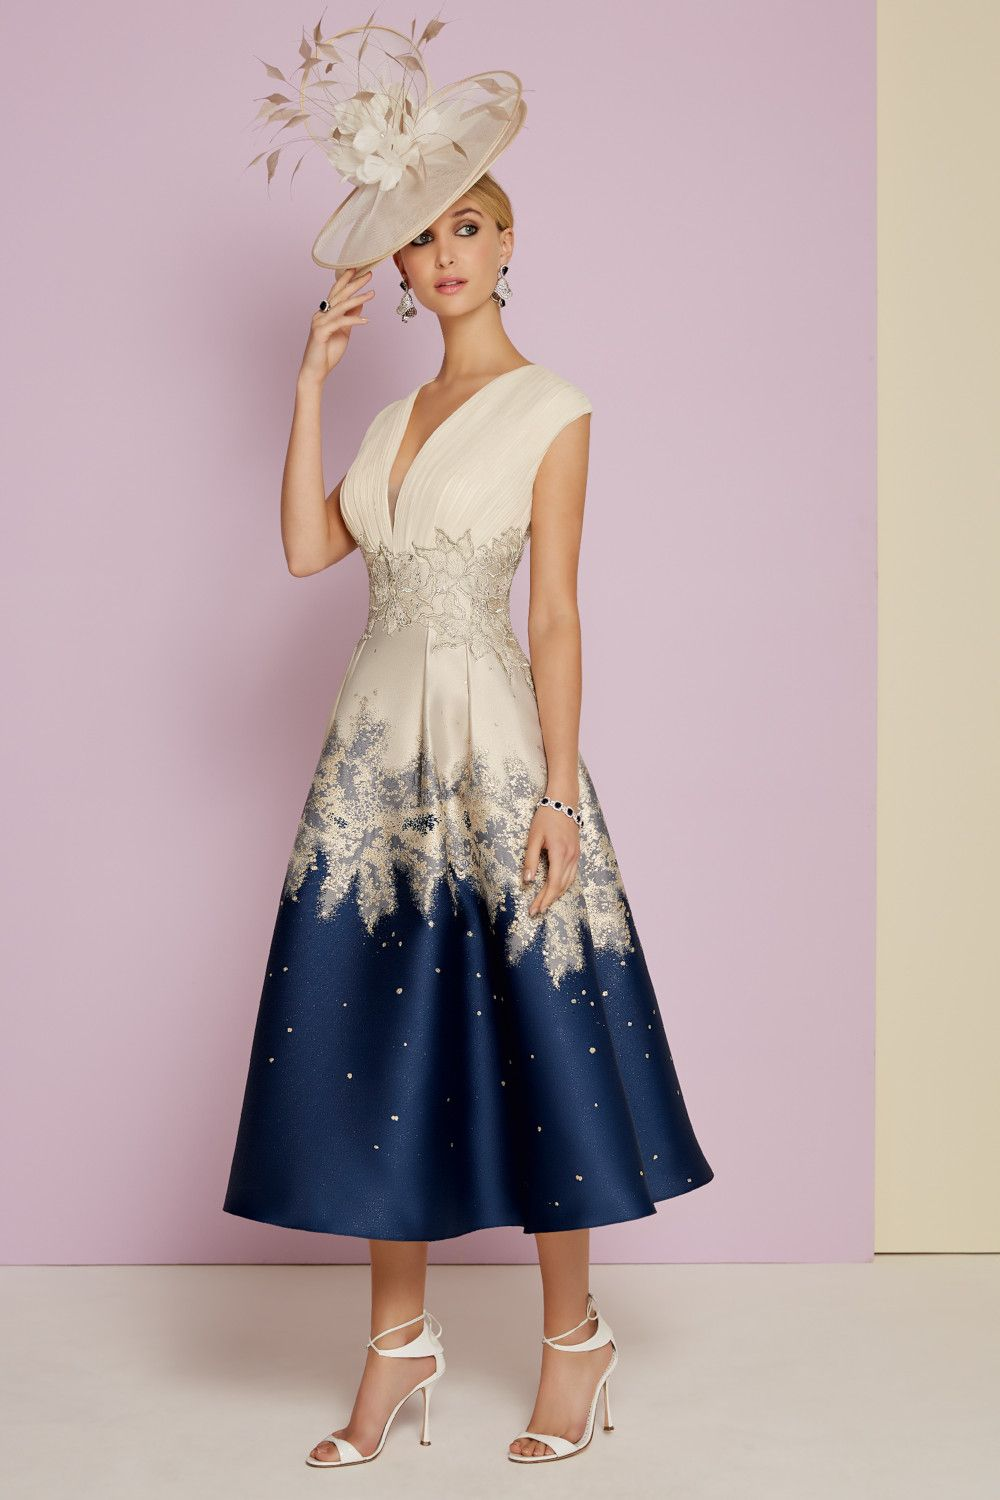 c2c1b10f21b UK stockist of ladies designer fashion collections, mother of the bride  outfits/dresses, special occasion/wedding wear, evening dresses & millinery  to buy ...